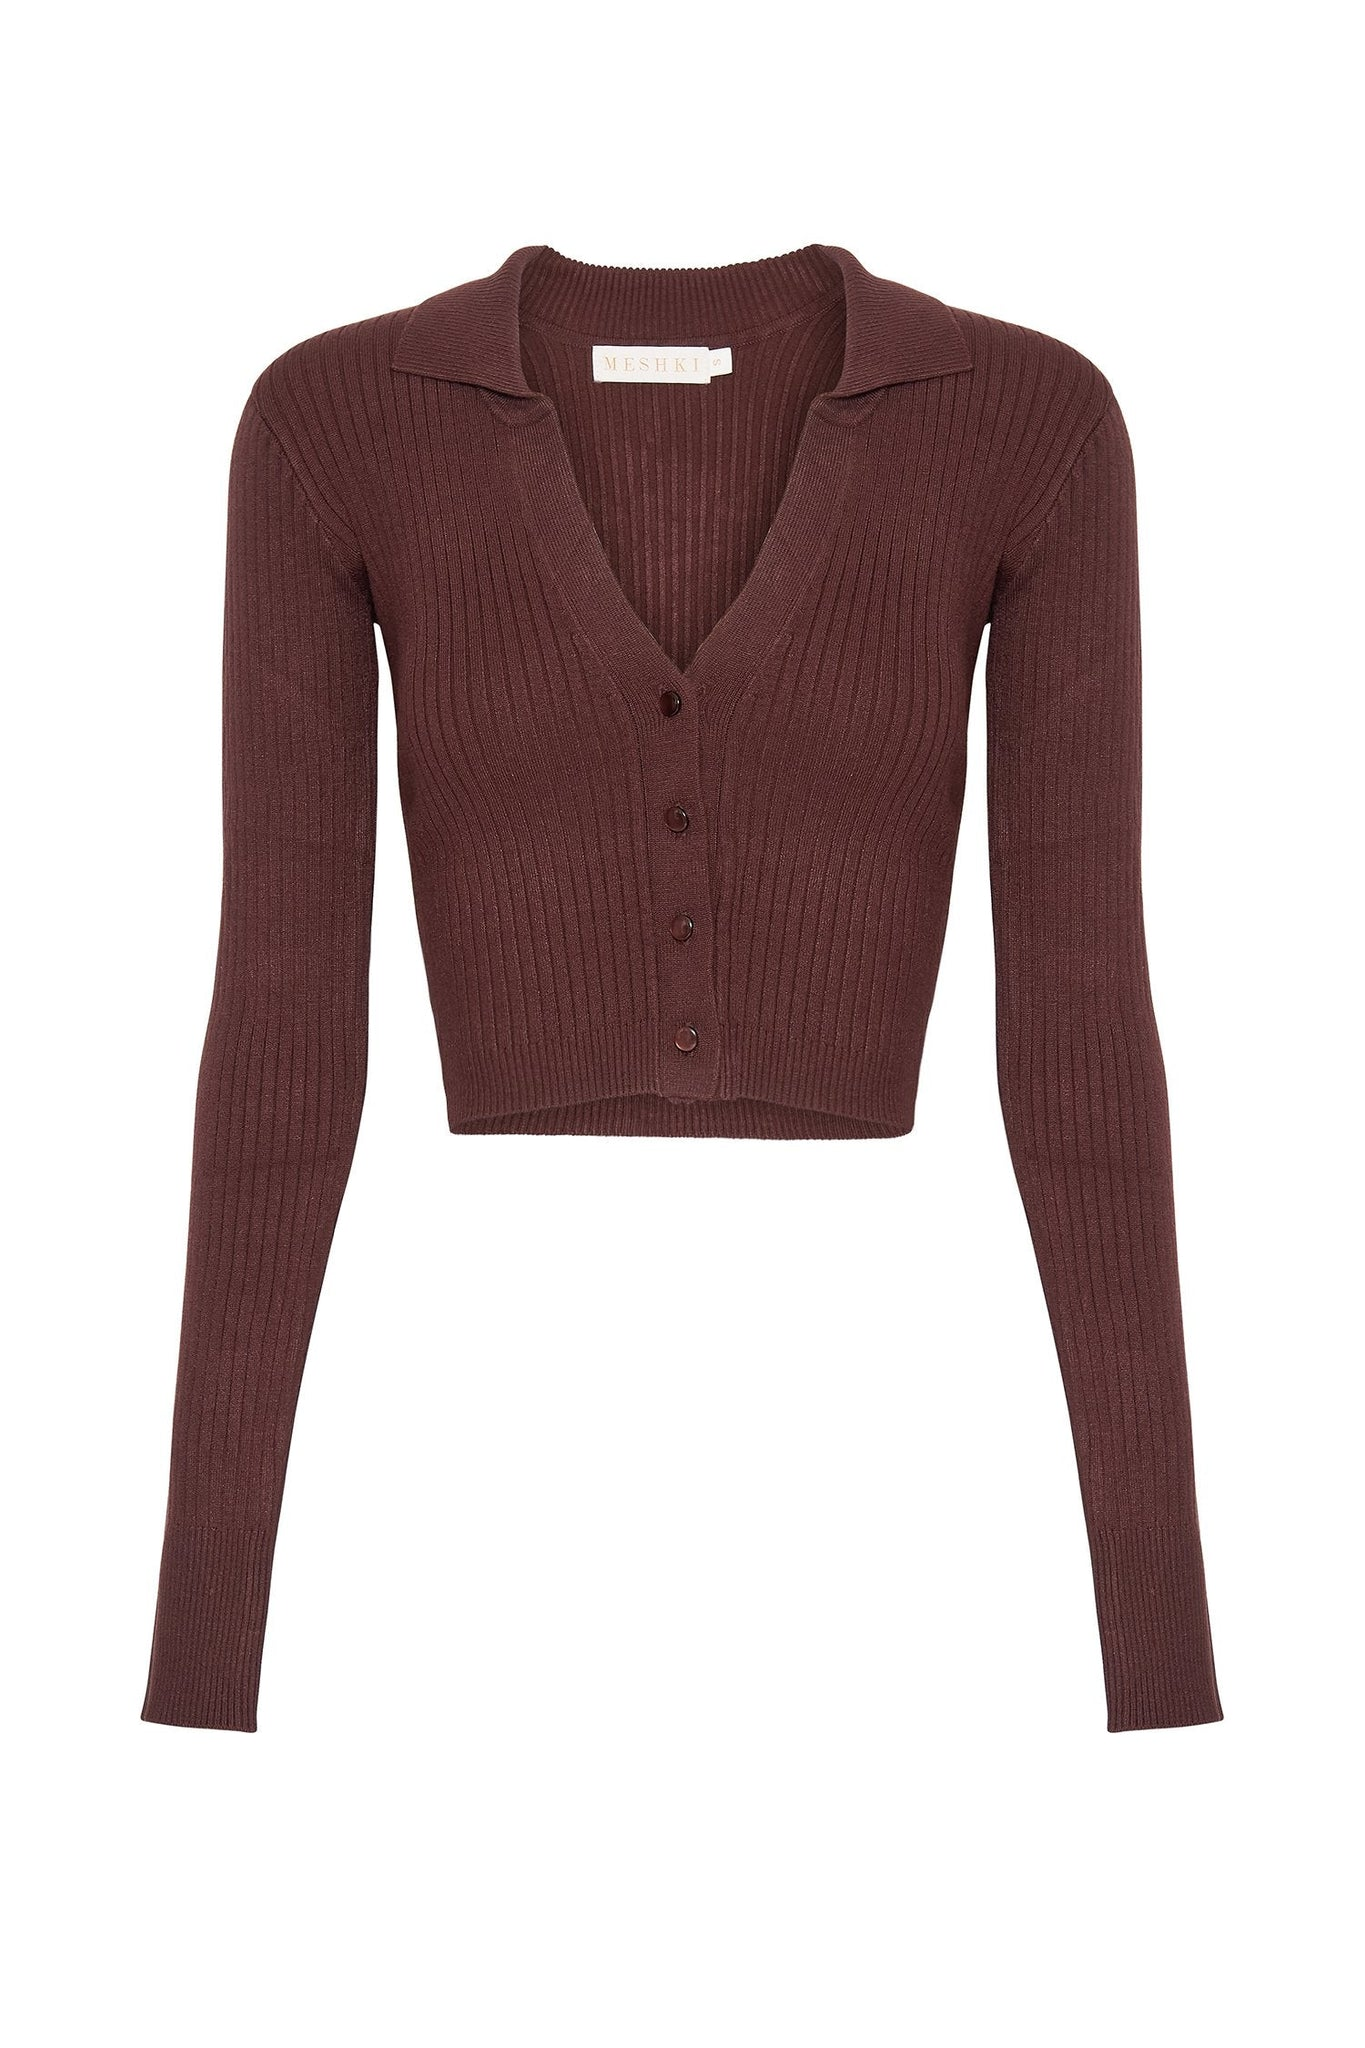 Amae Long Sleeve Cropped Polo Cardigan - Chocolate - MESHKI